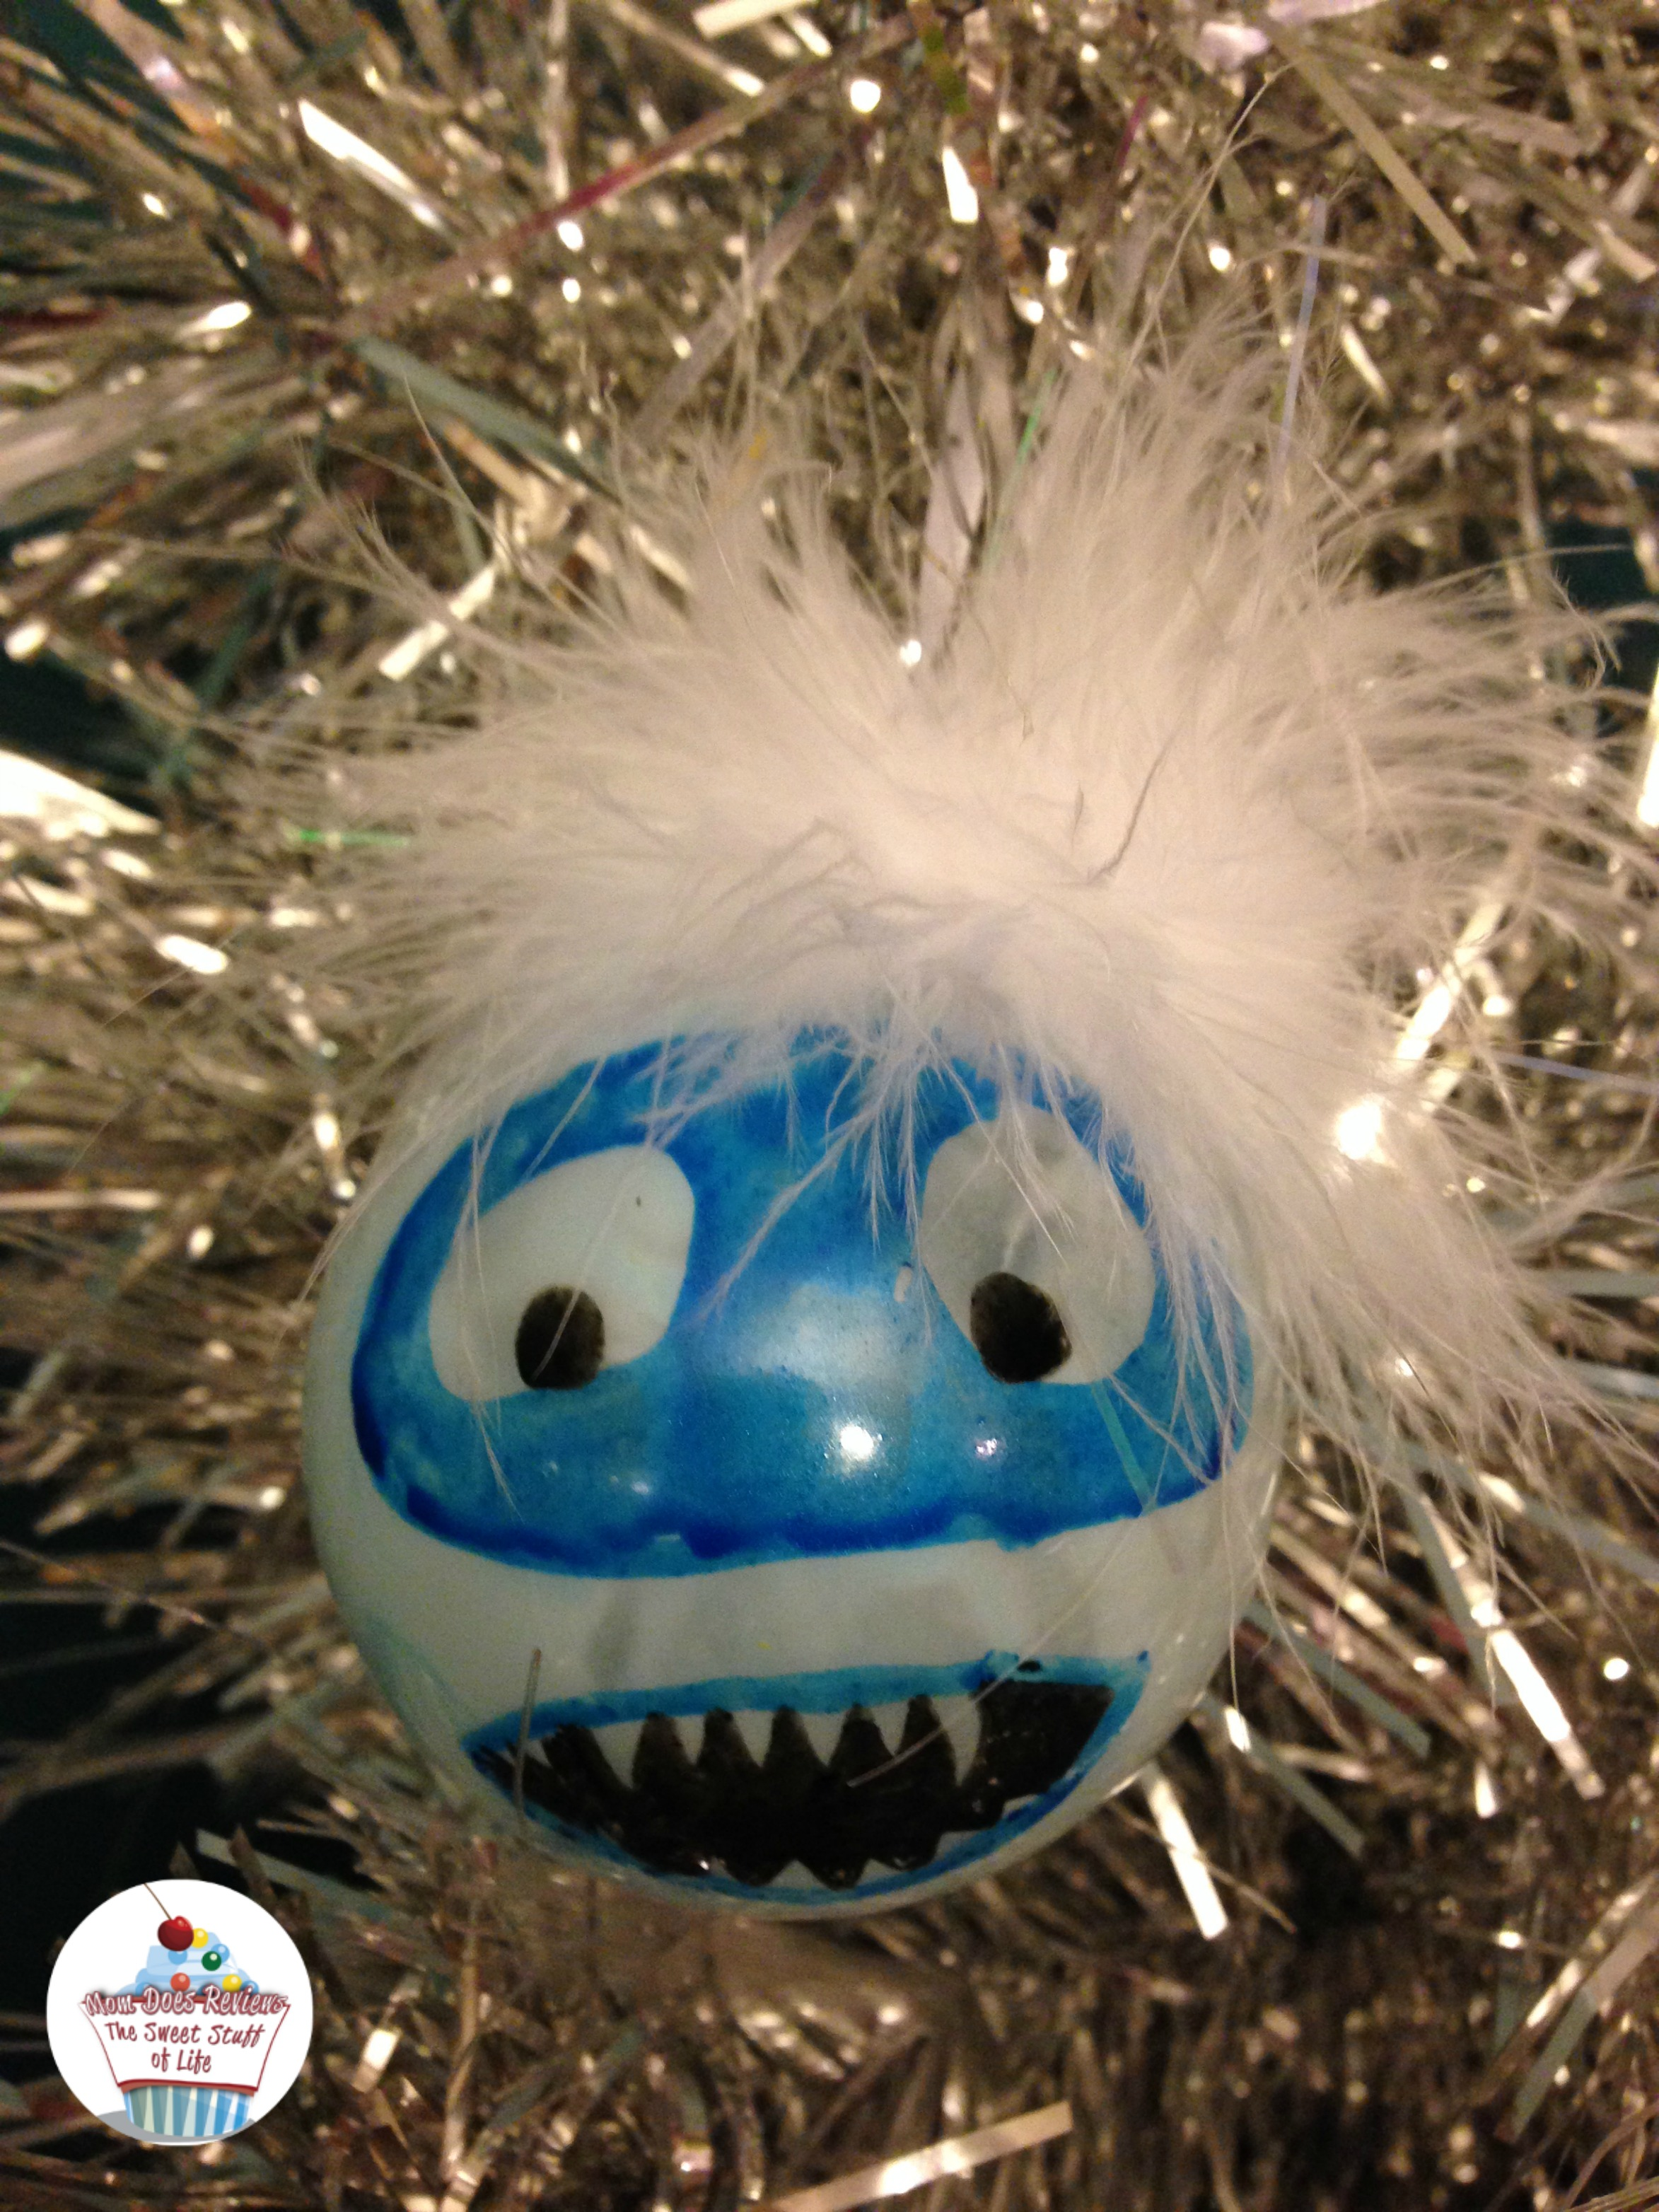 Diy abominable snowman grinch ornaments christmascrafts for Abominable snowman christmas light decoration